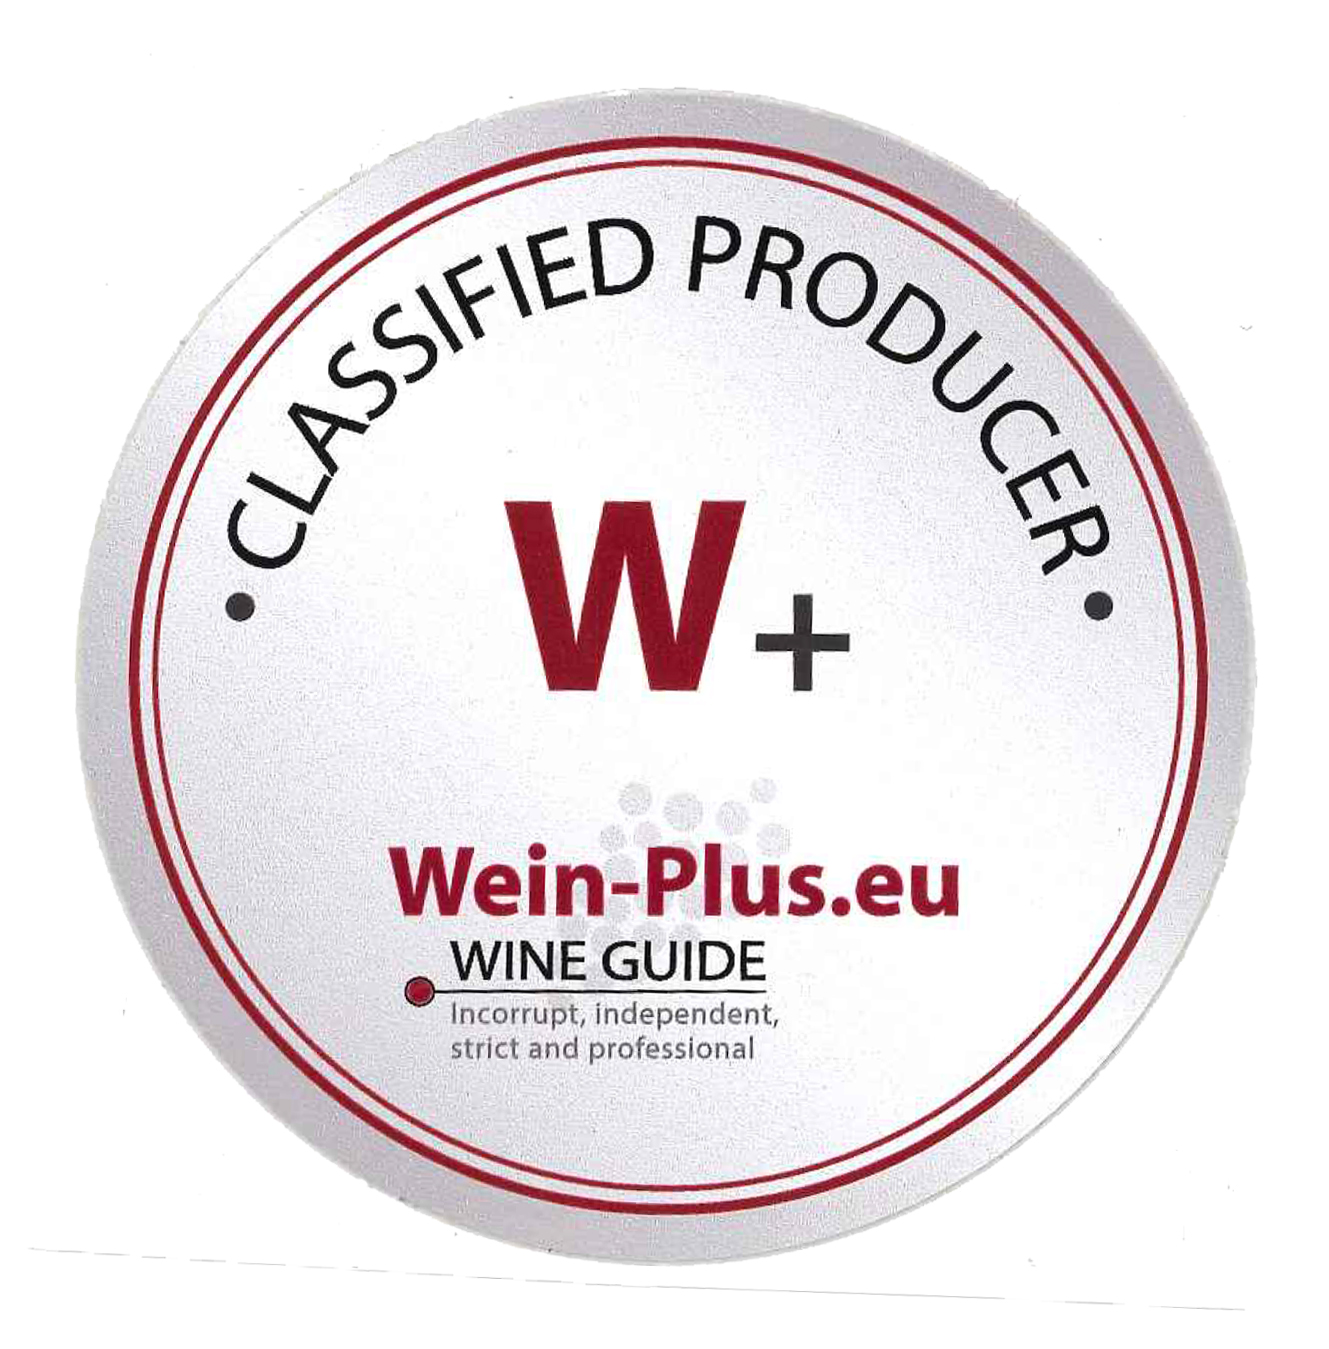 Wein-Plus.eu - Classified Producer W+